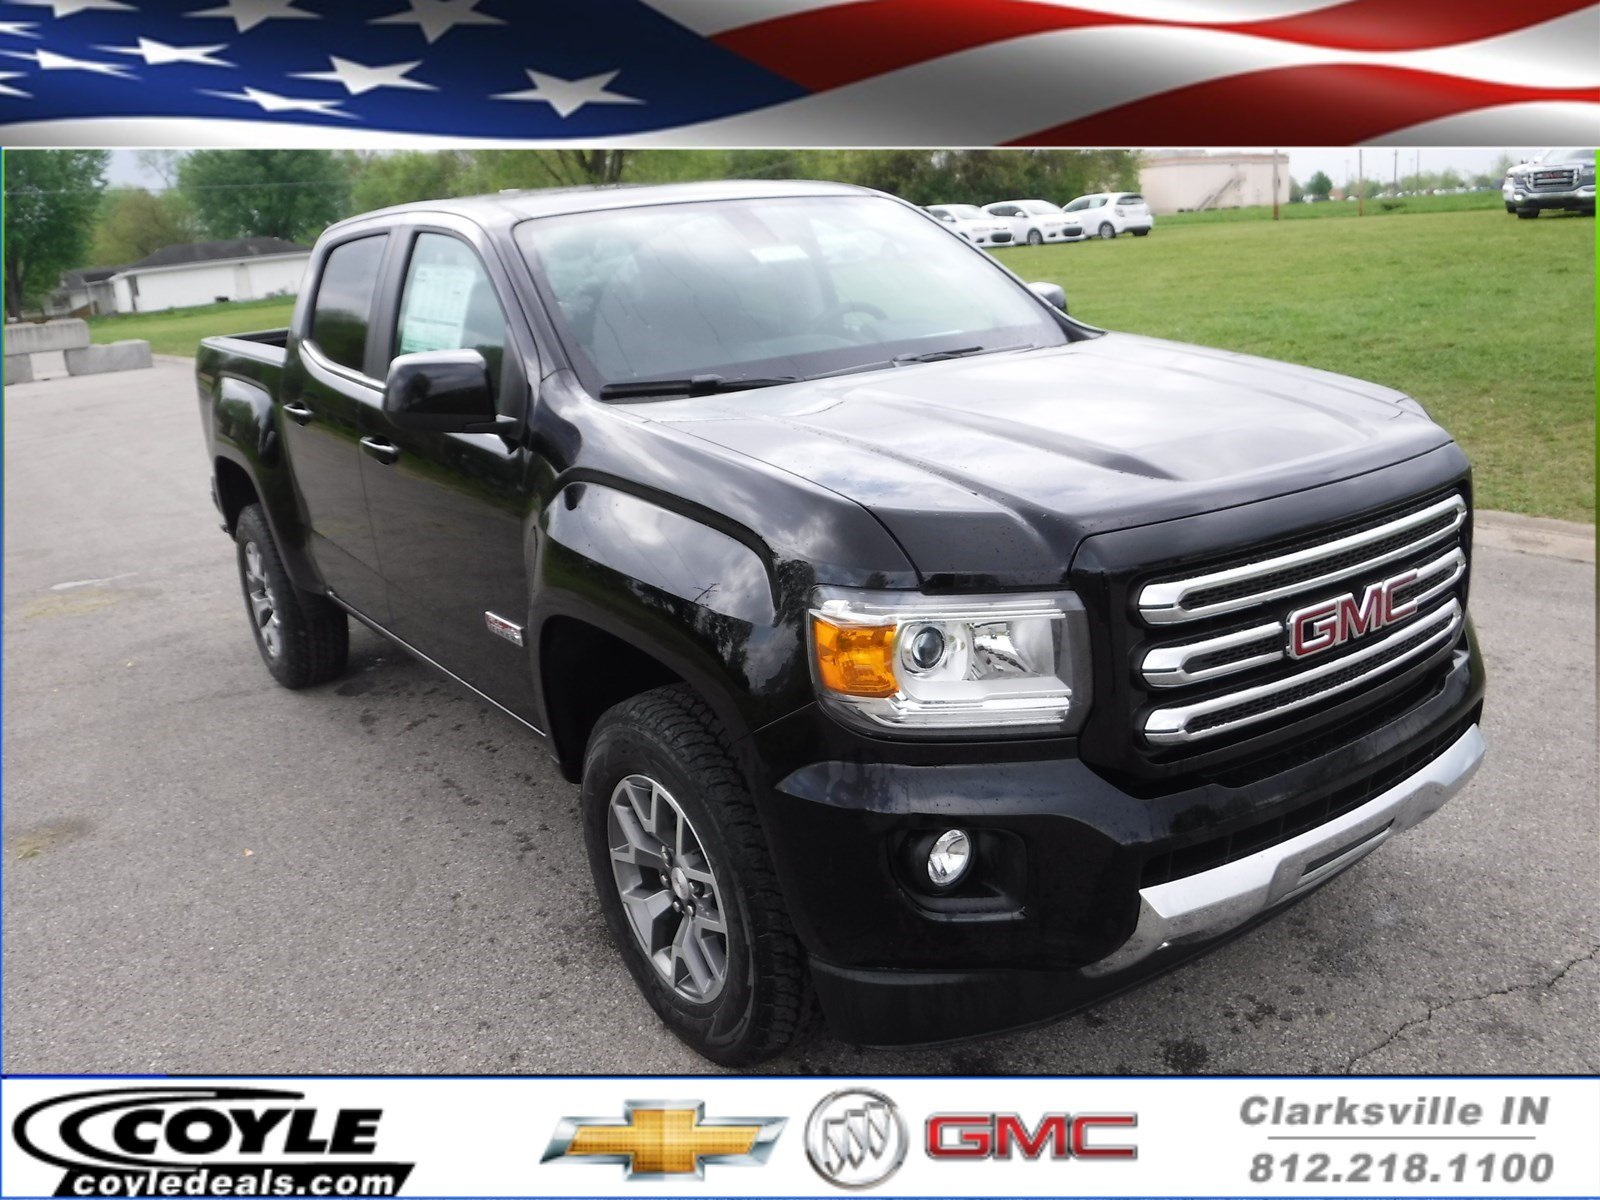 new 2017 gmc canyon 4wd sle crew cab pickup in clarksville g17328 coyle chevrolet. Black Bedroom Furniture Sets. Home Design Ideas